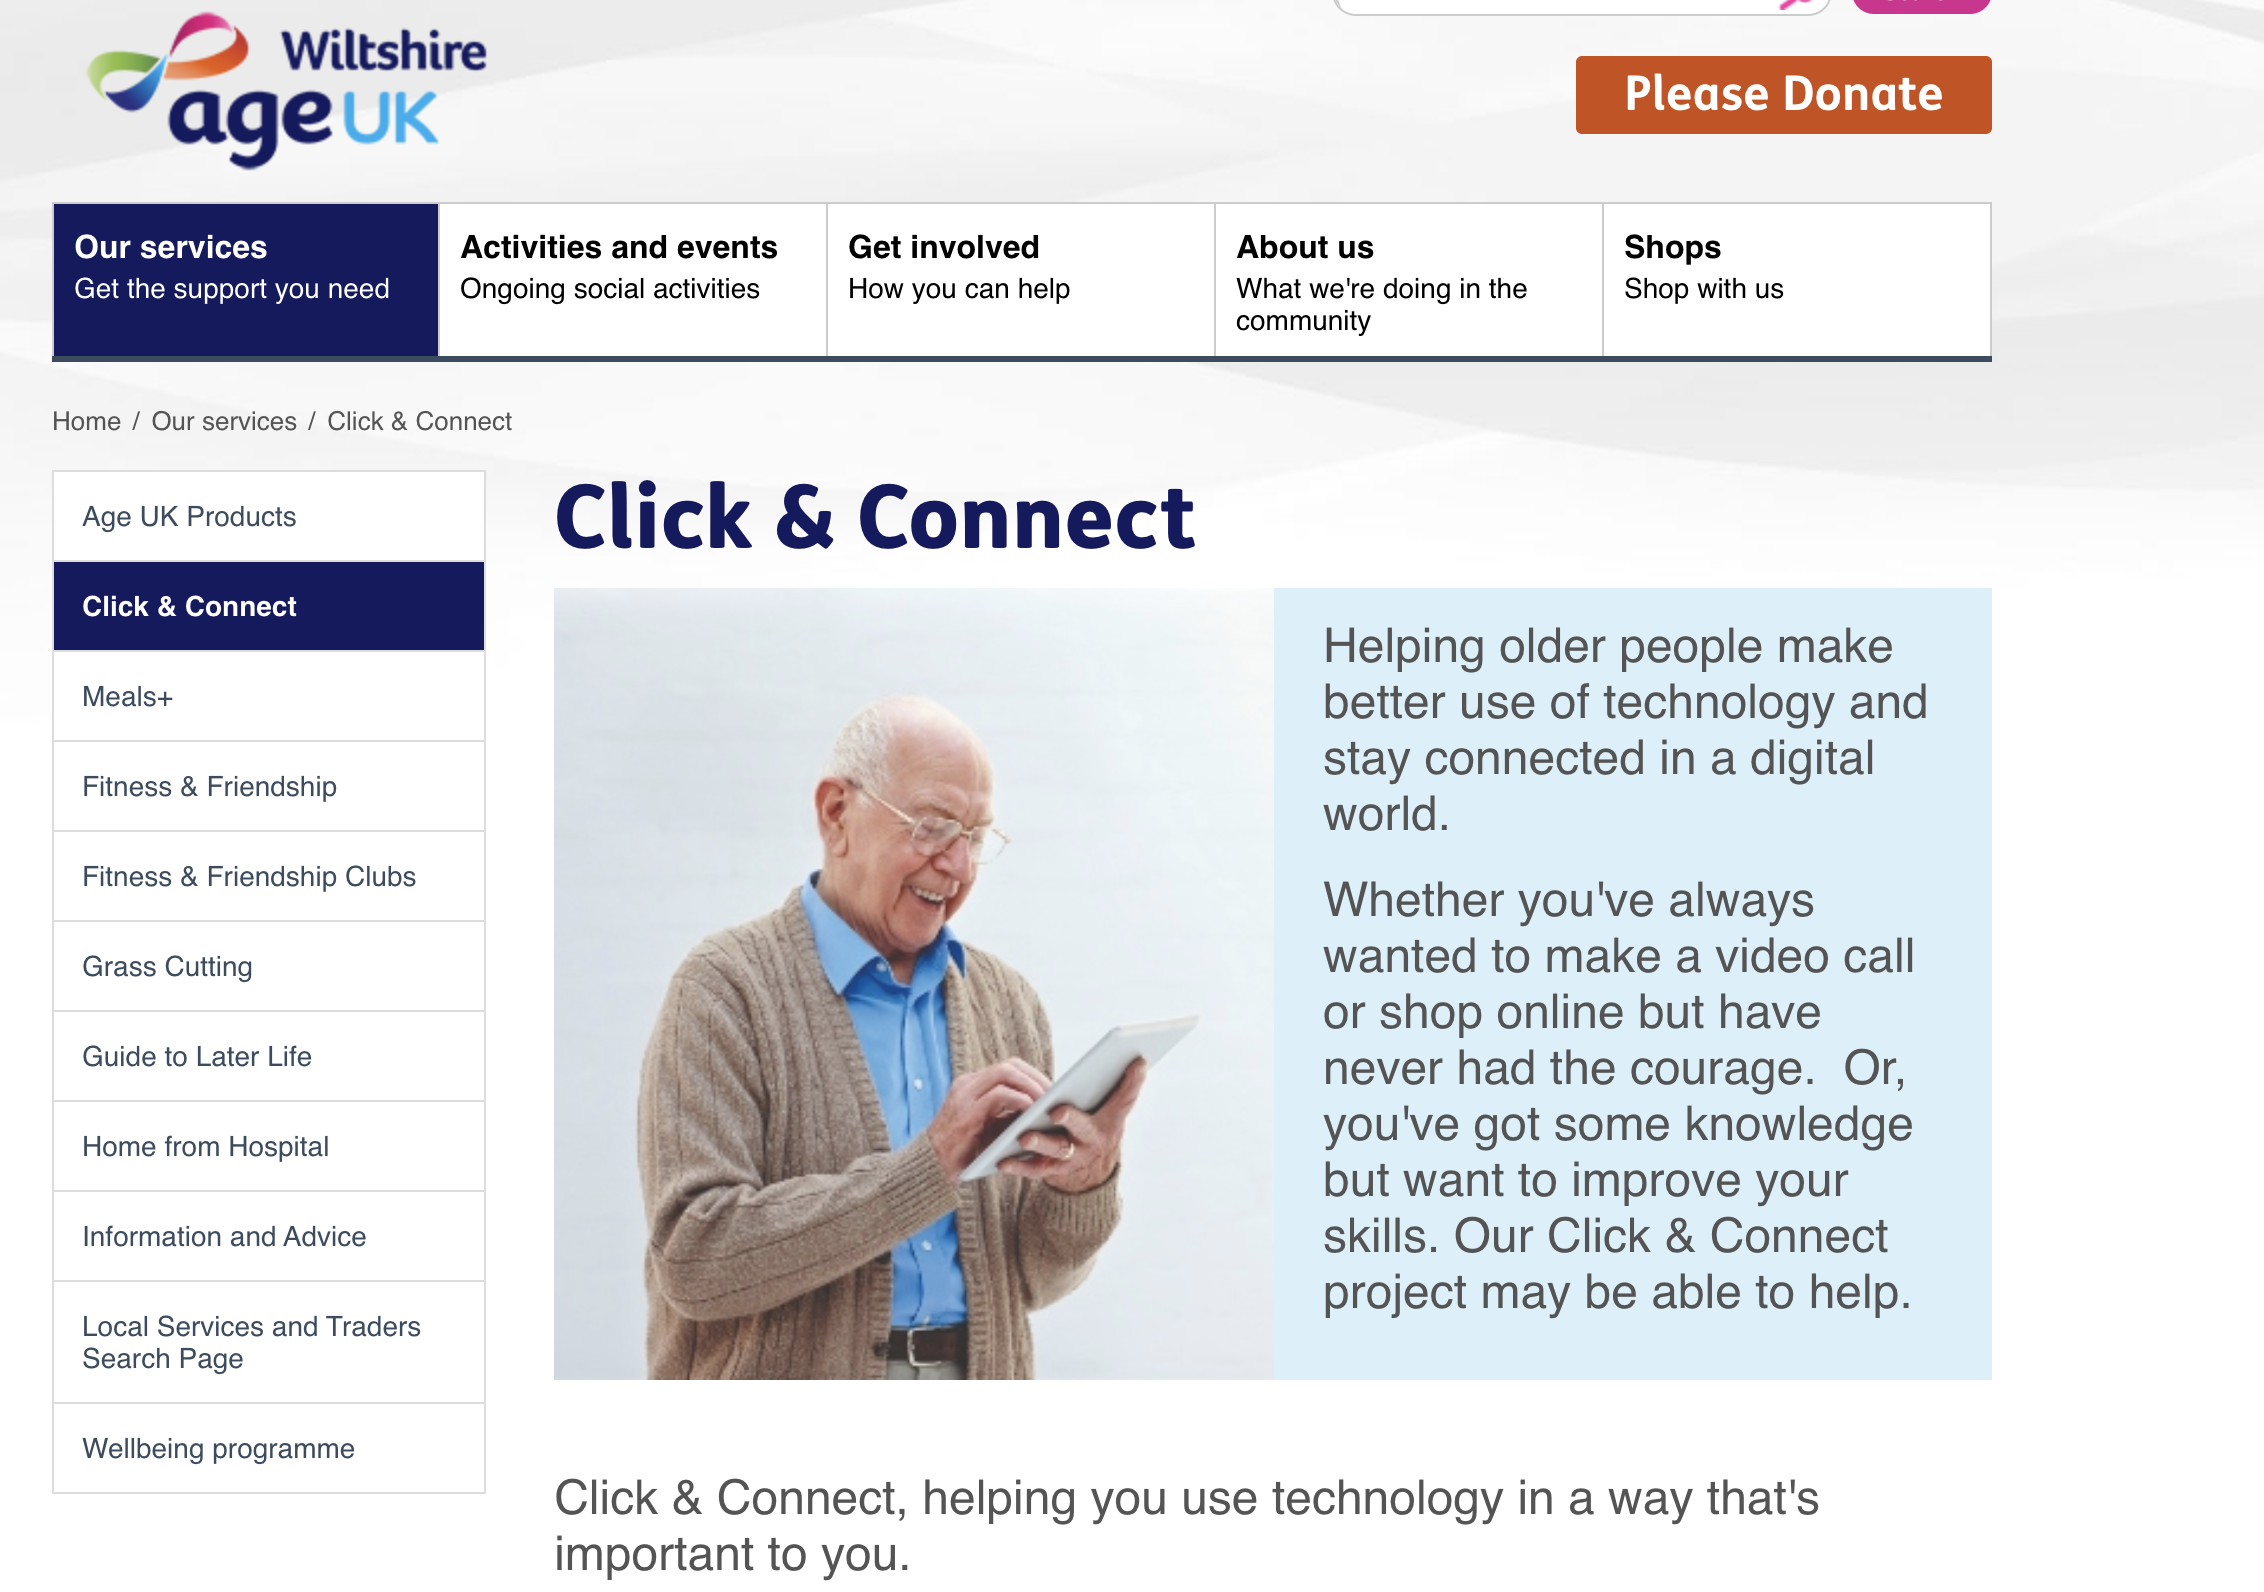 Image shows home page for the Click and Connect project and has a picture of an older gentleman holding a tablet